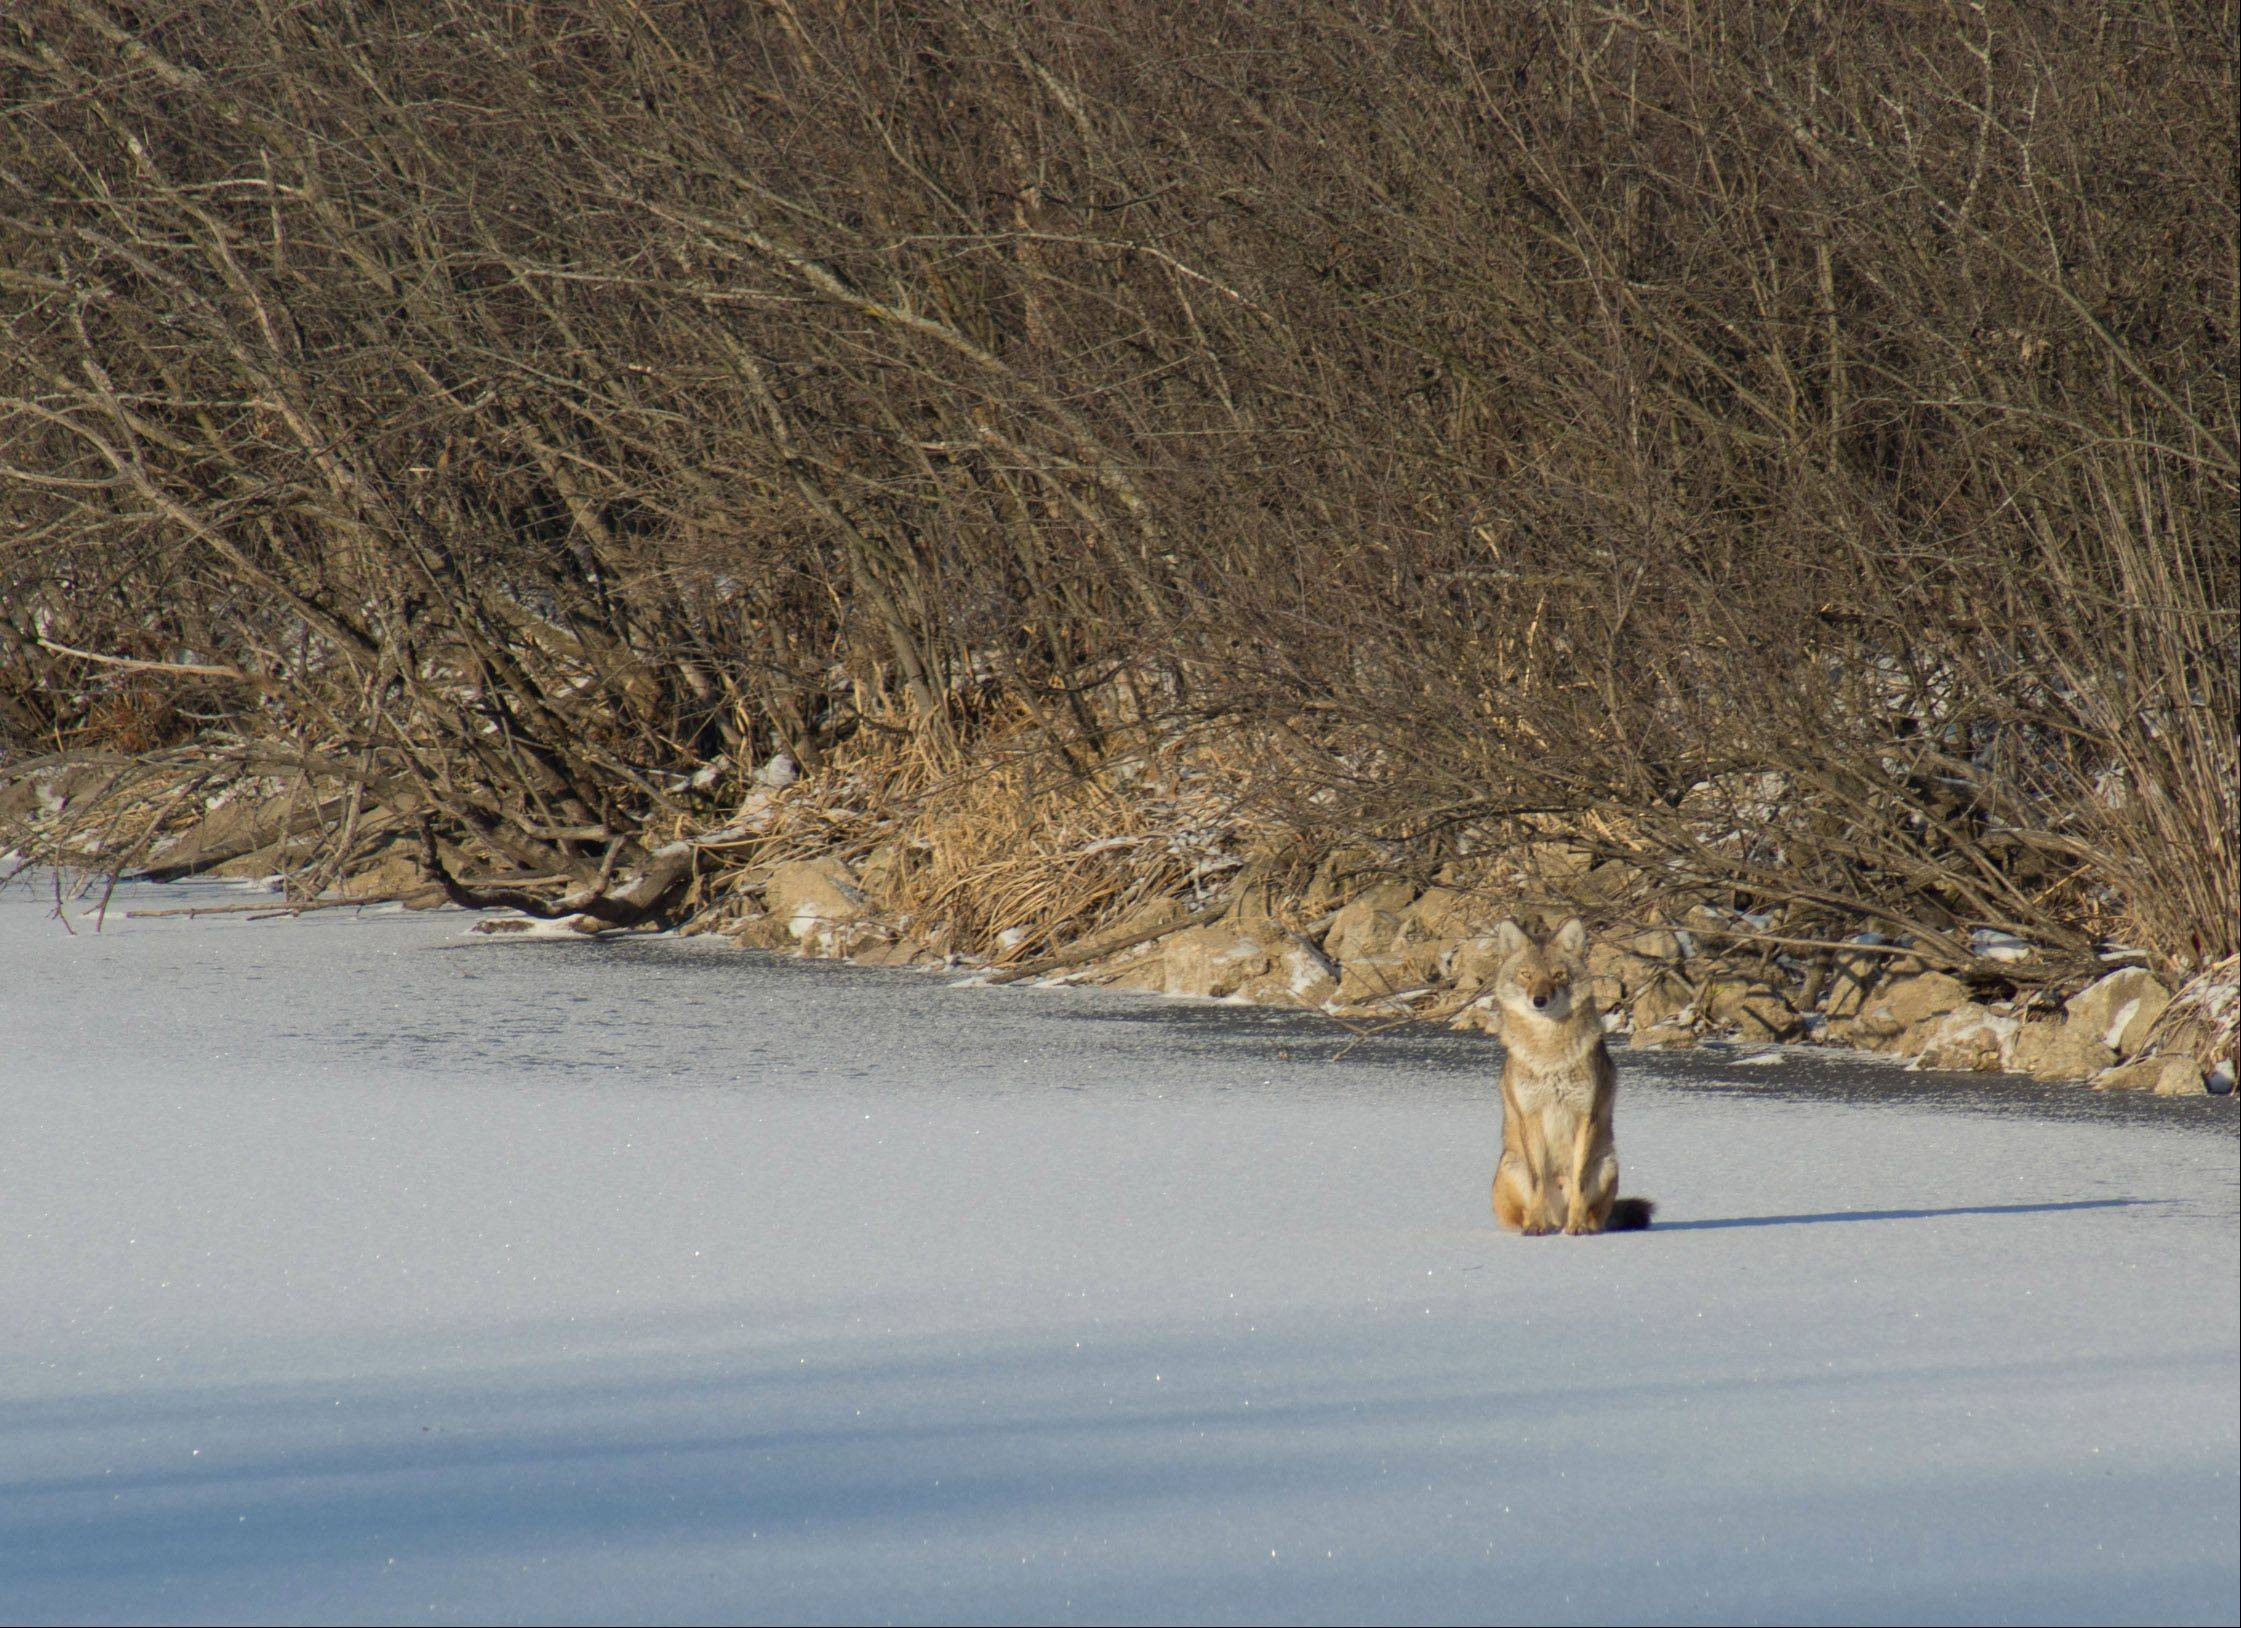 A coyote on a frozen lake at Crabtree Nature Center in Barrington Hills in December.